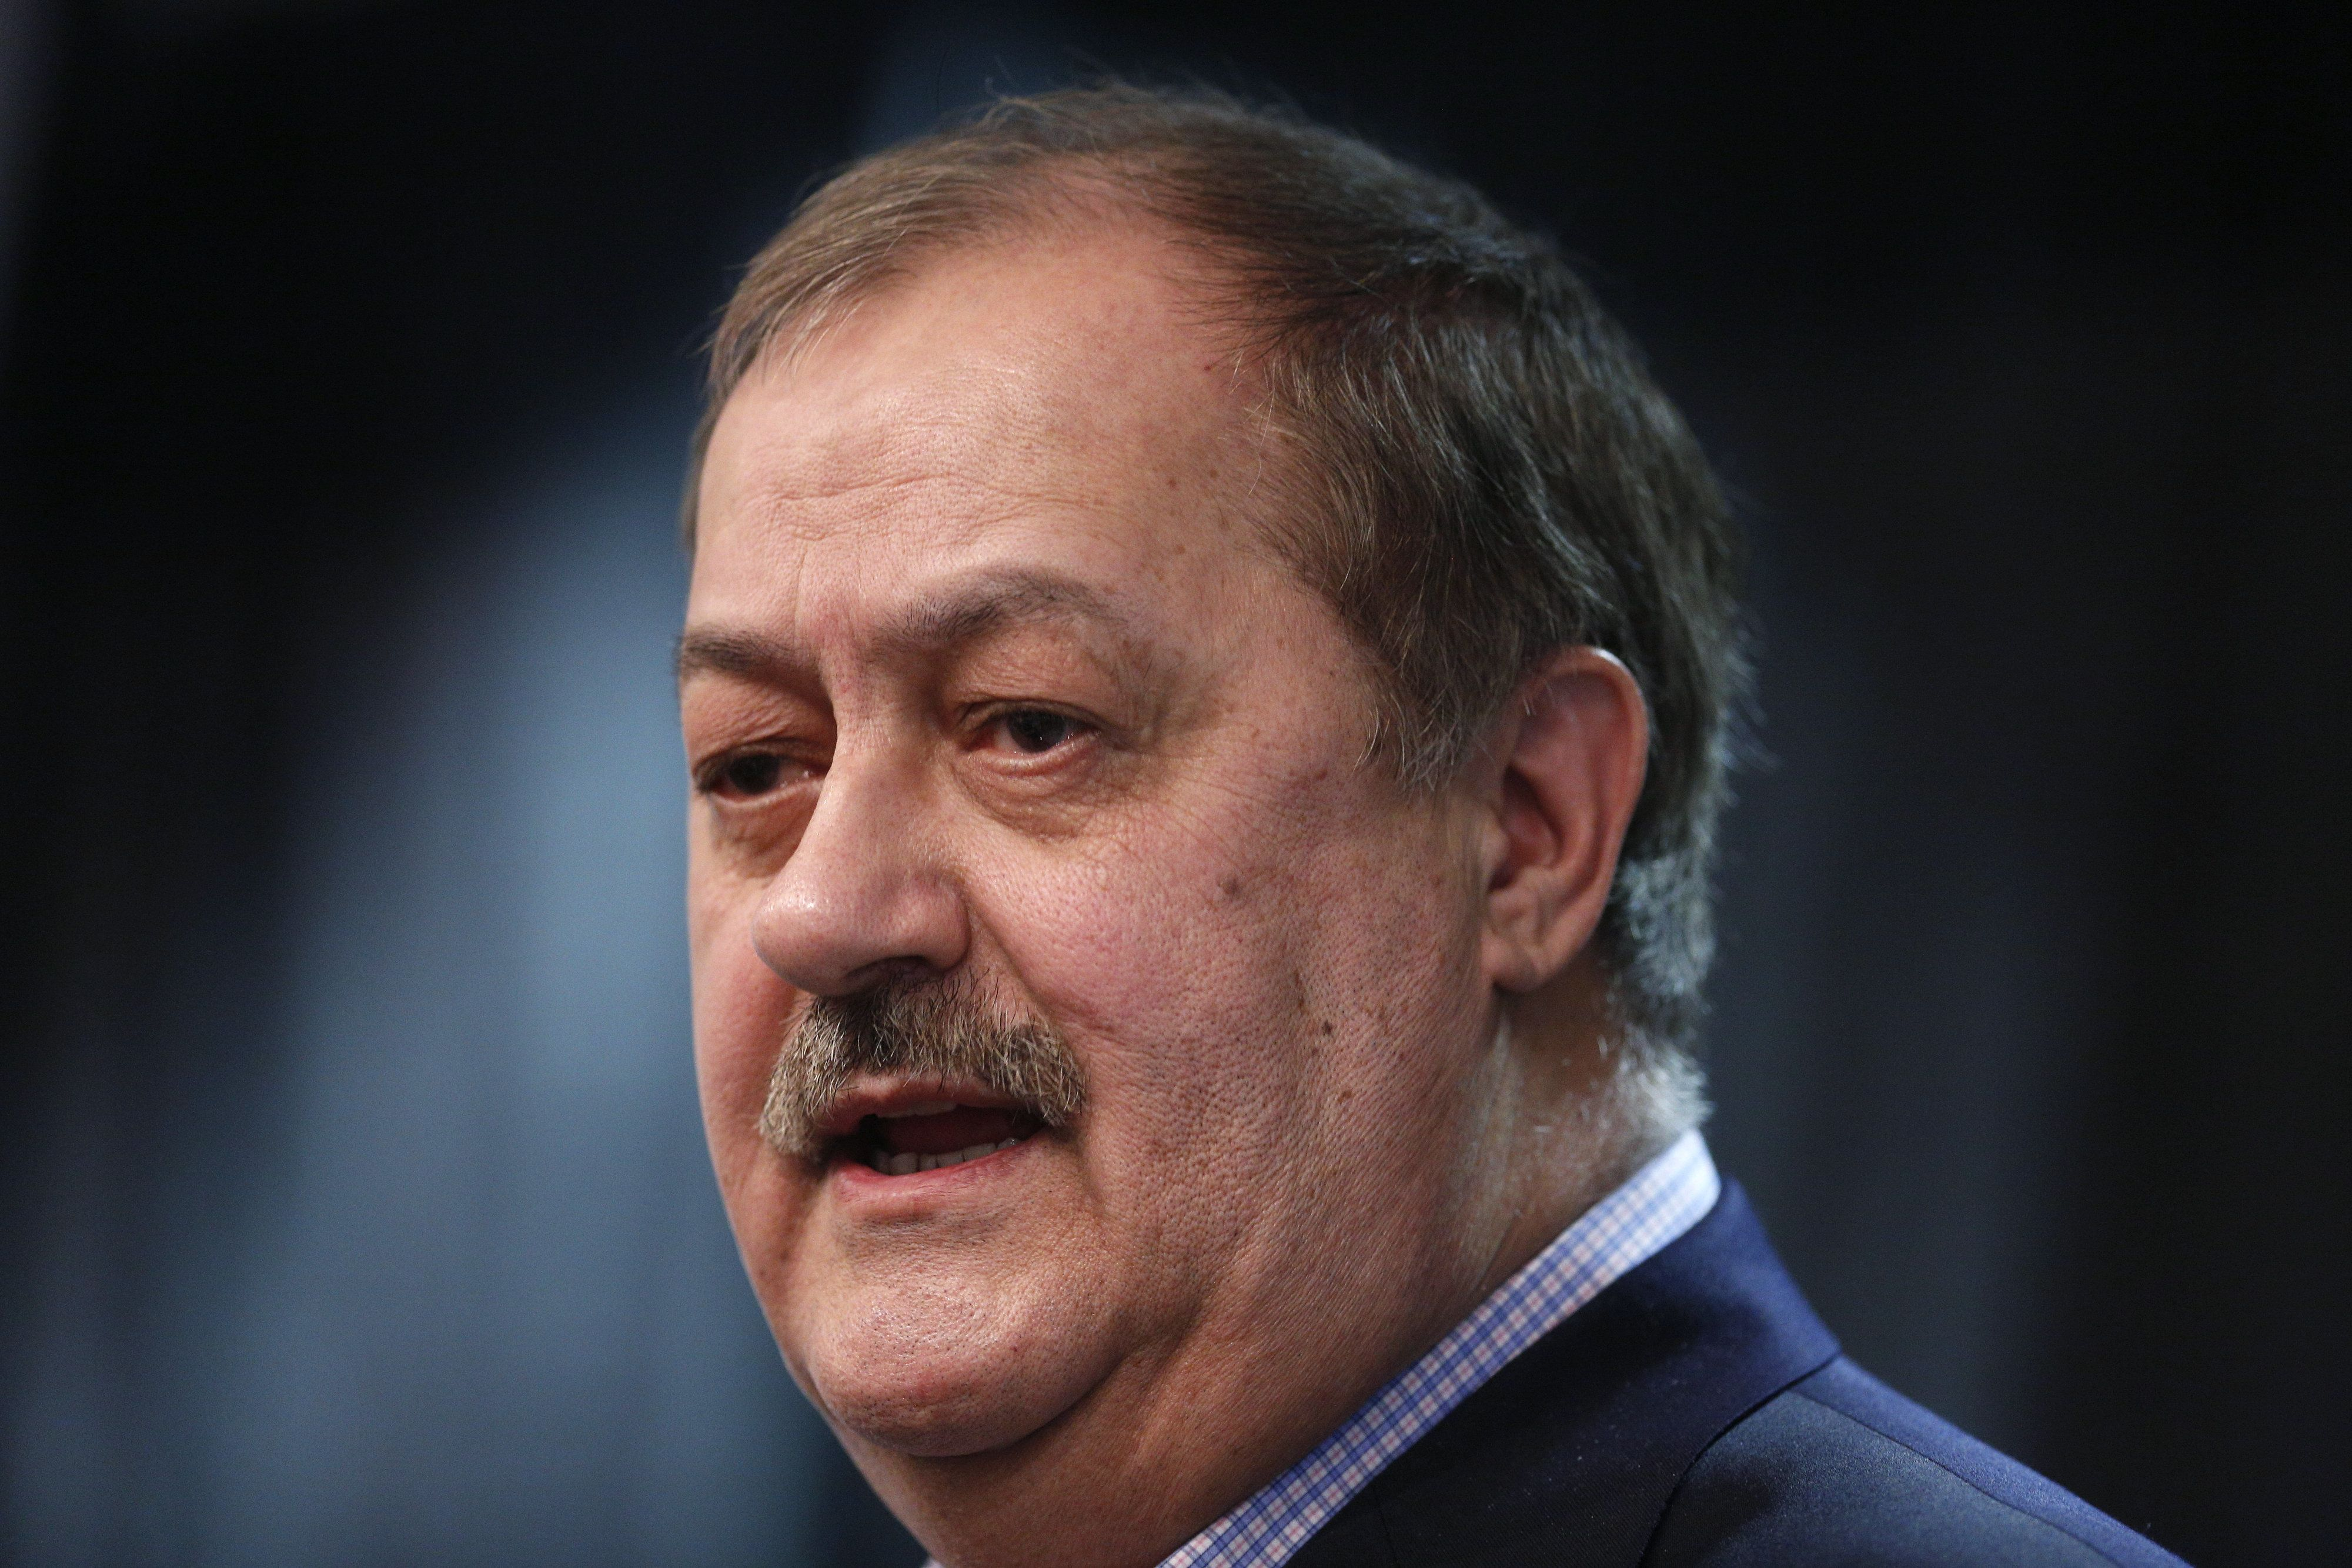 Former Massey Energy CEO Don Blankenship, Republican U.S. Senate candidate from West Virginia, speaks during a town hall campaign event in Huntington, West Virginia, U.S., on Thursday, Feb. 1, 2018. Blankenship has previously declared avid support for pro-coal President Donald Trump and signaled he was aligned with West Virginia's hard-working electorate. Photographer: Luke Sharrett/Bloomberg via Getty Images